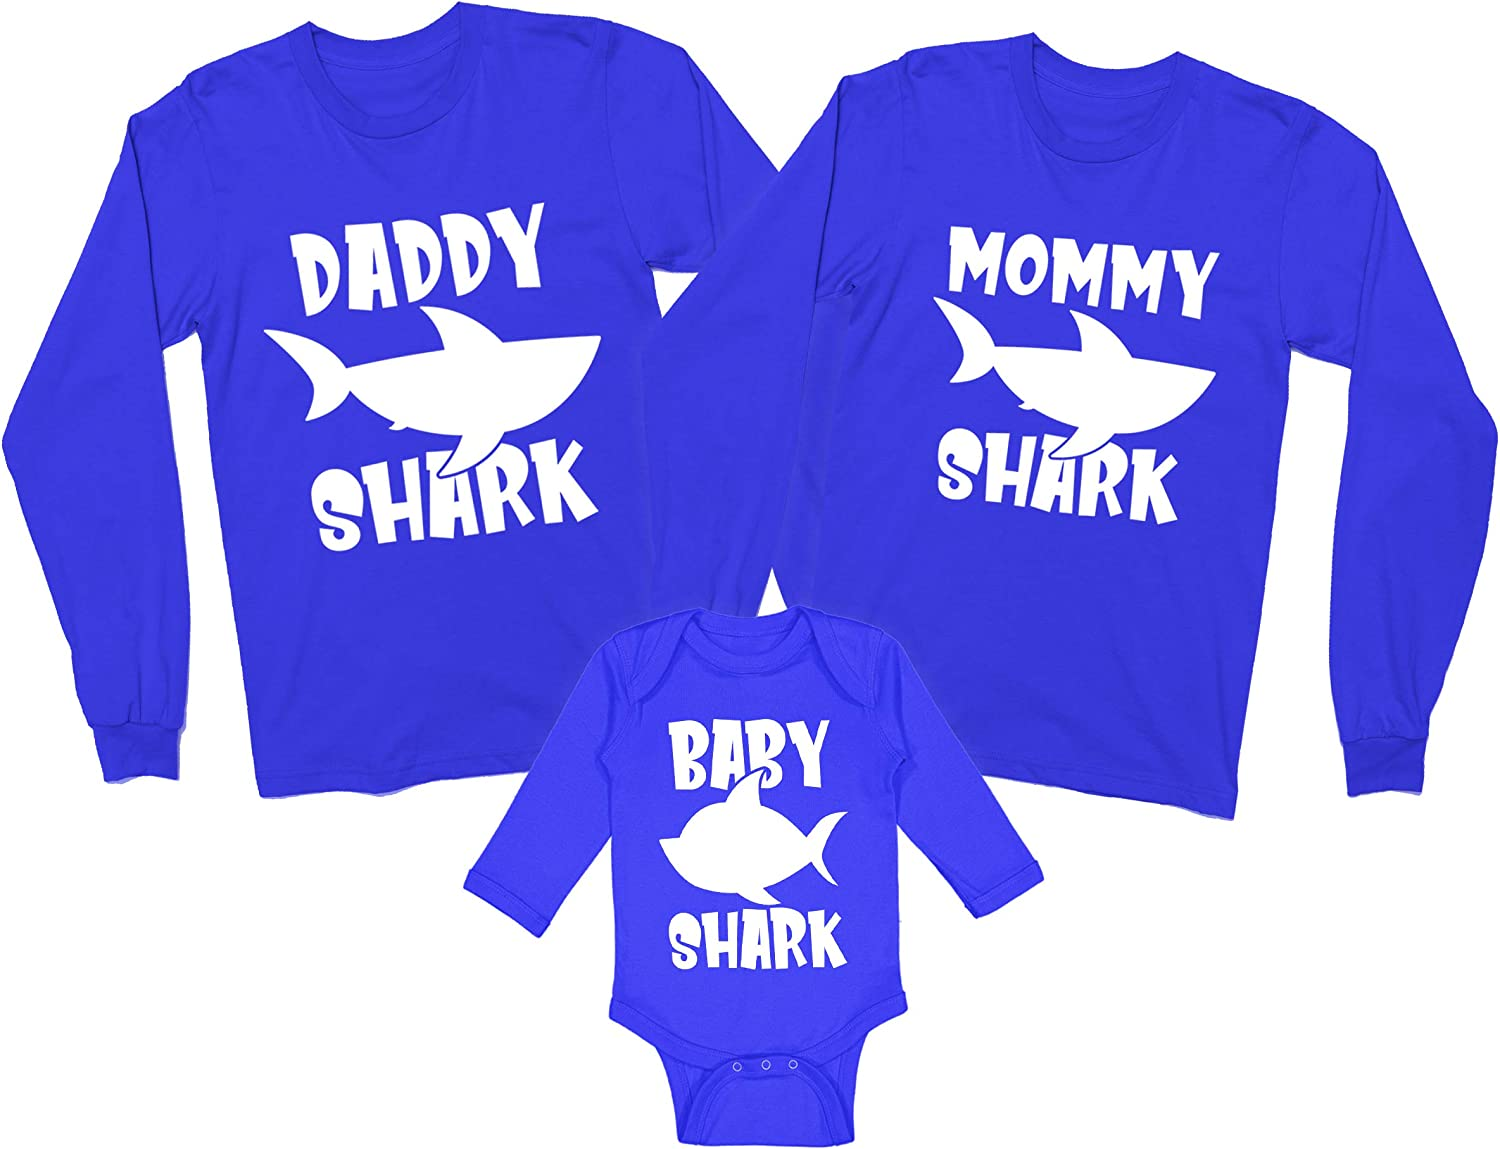 Daddy/Mommy/Baby Shark - Funny Children's Song Parody Matching Long Sleeve Family Shirts